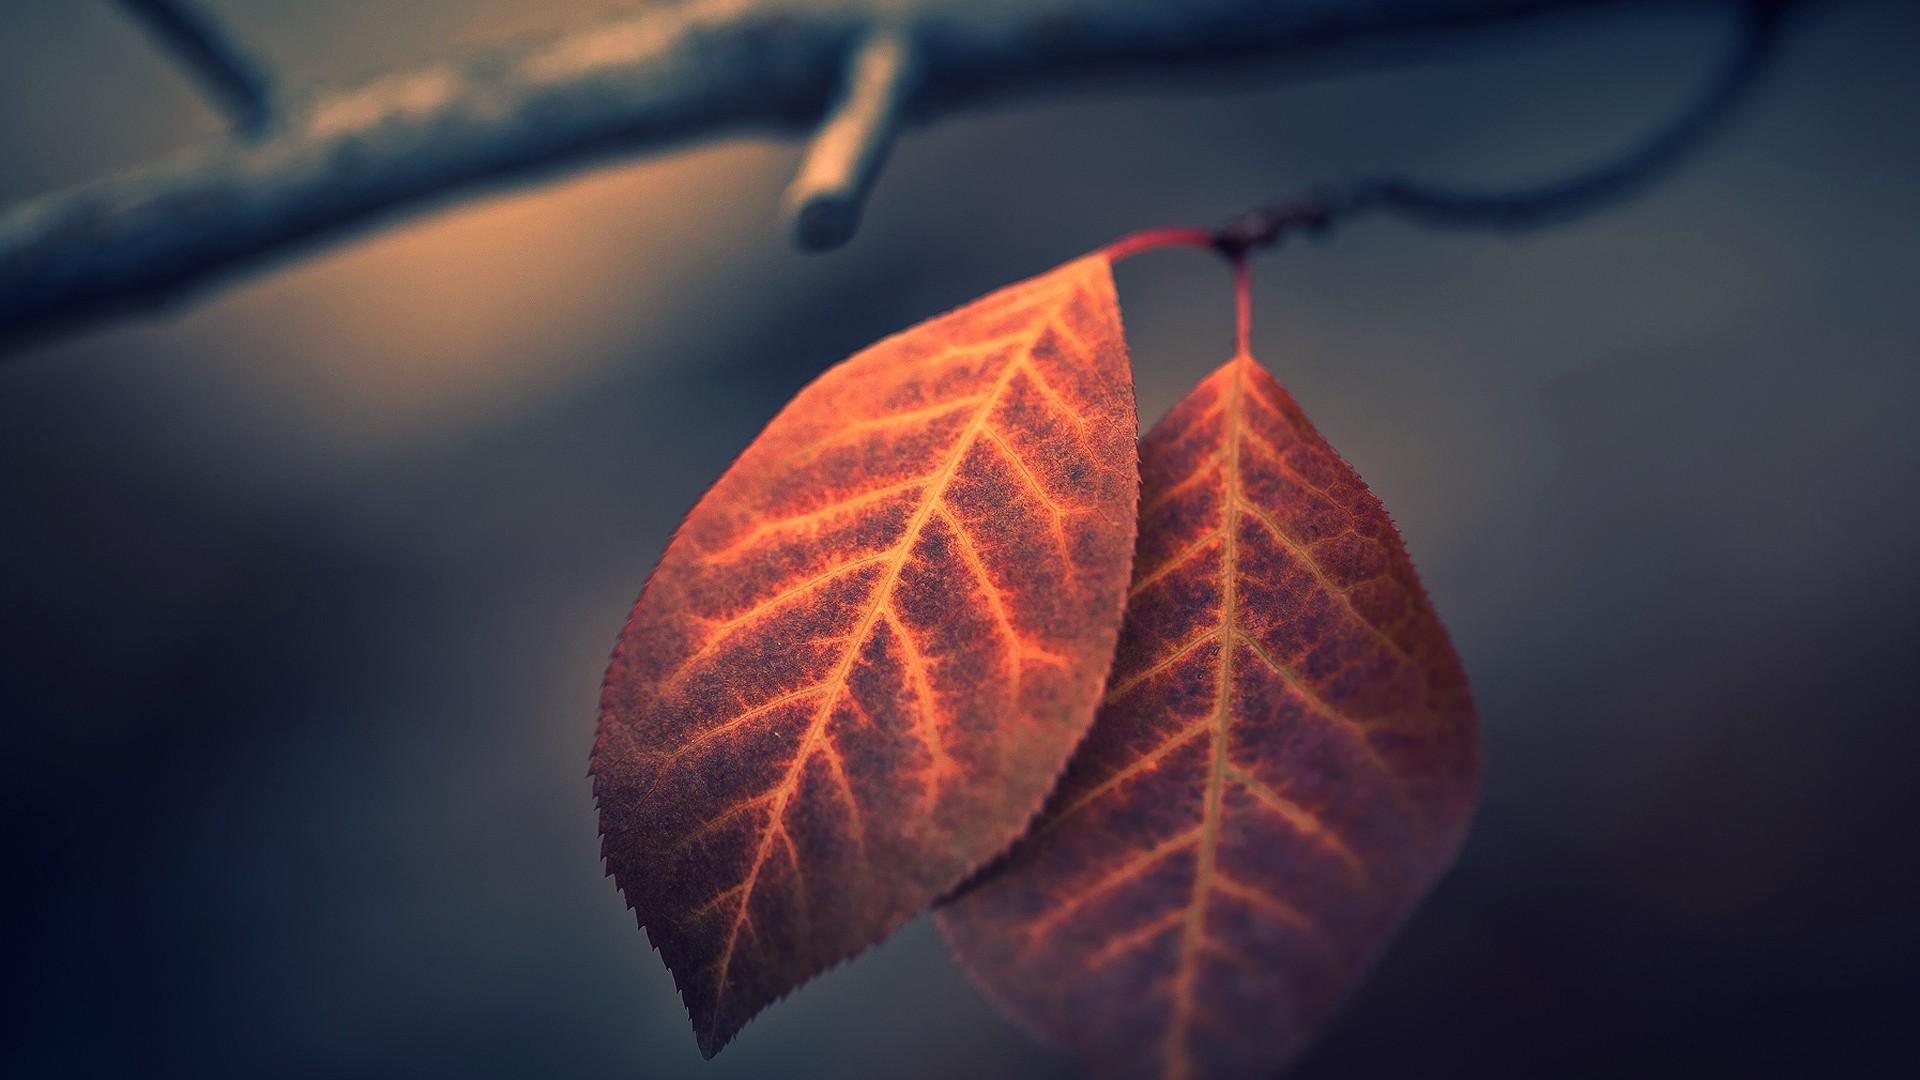 Fall Scenery Desktop Wallpapers Photography Nature Leaves Macro Branch Fall